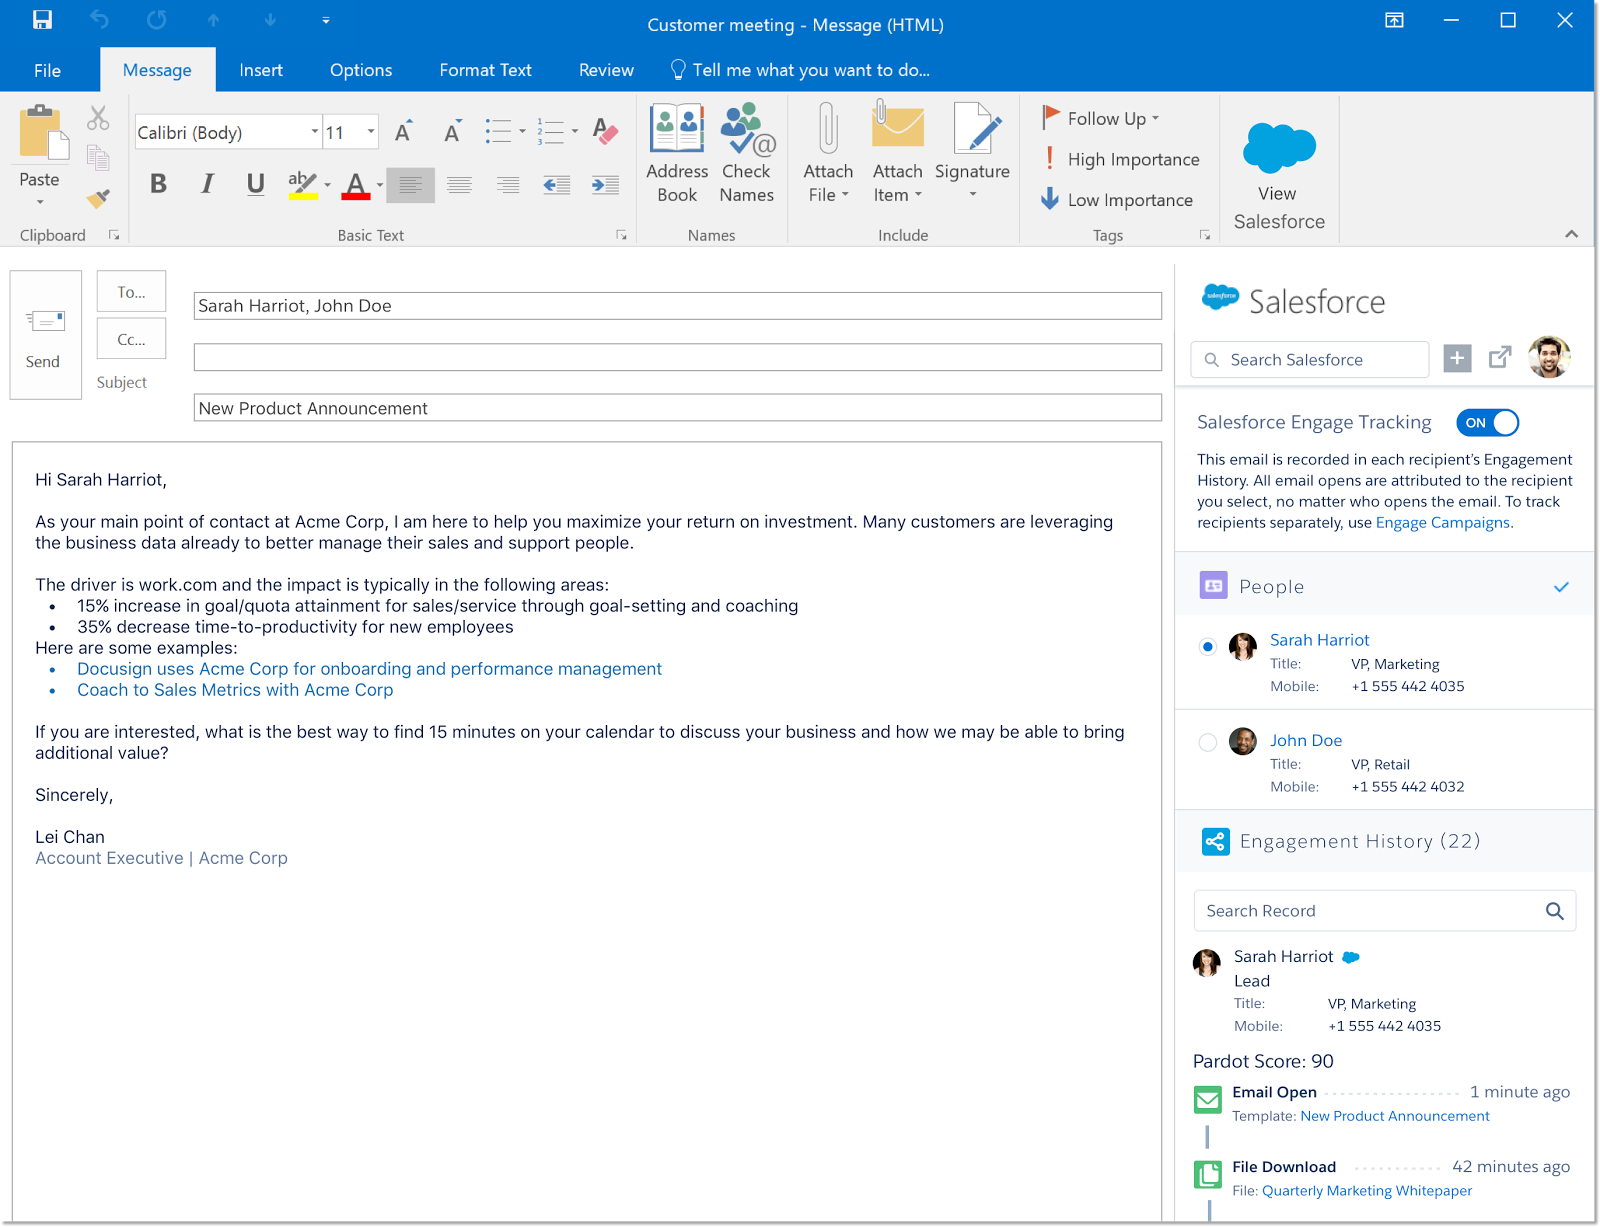 Engage for Outlook displaying Salesforce Engage Options